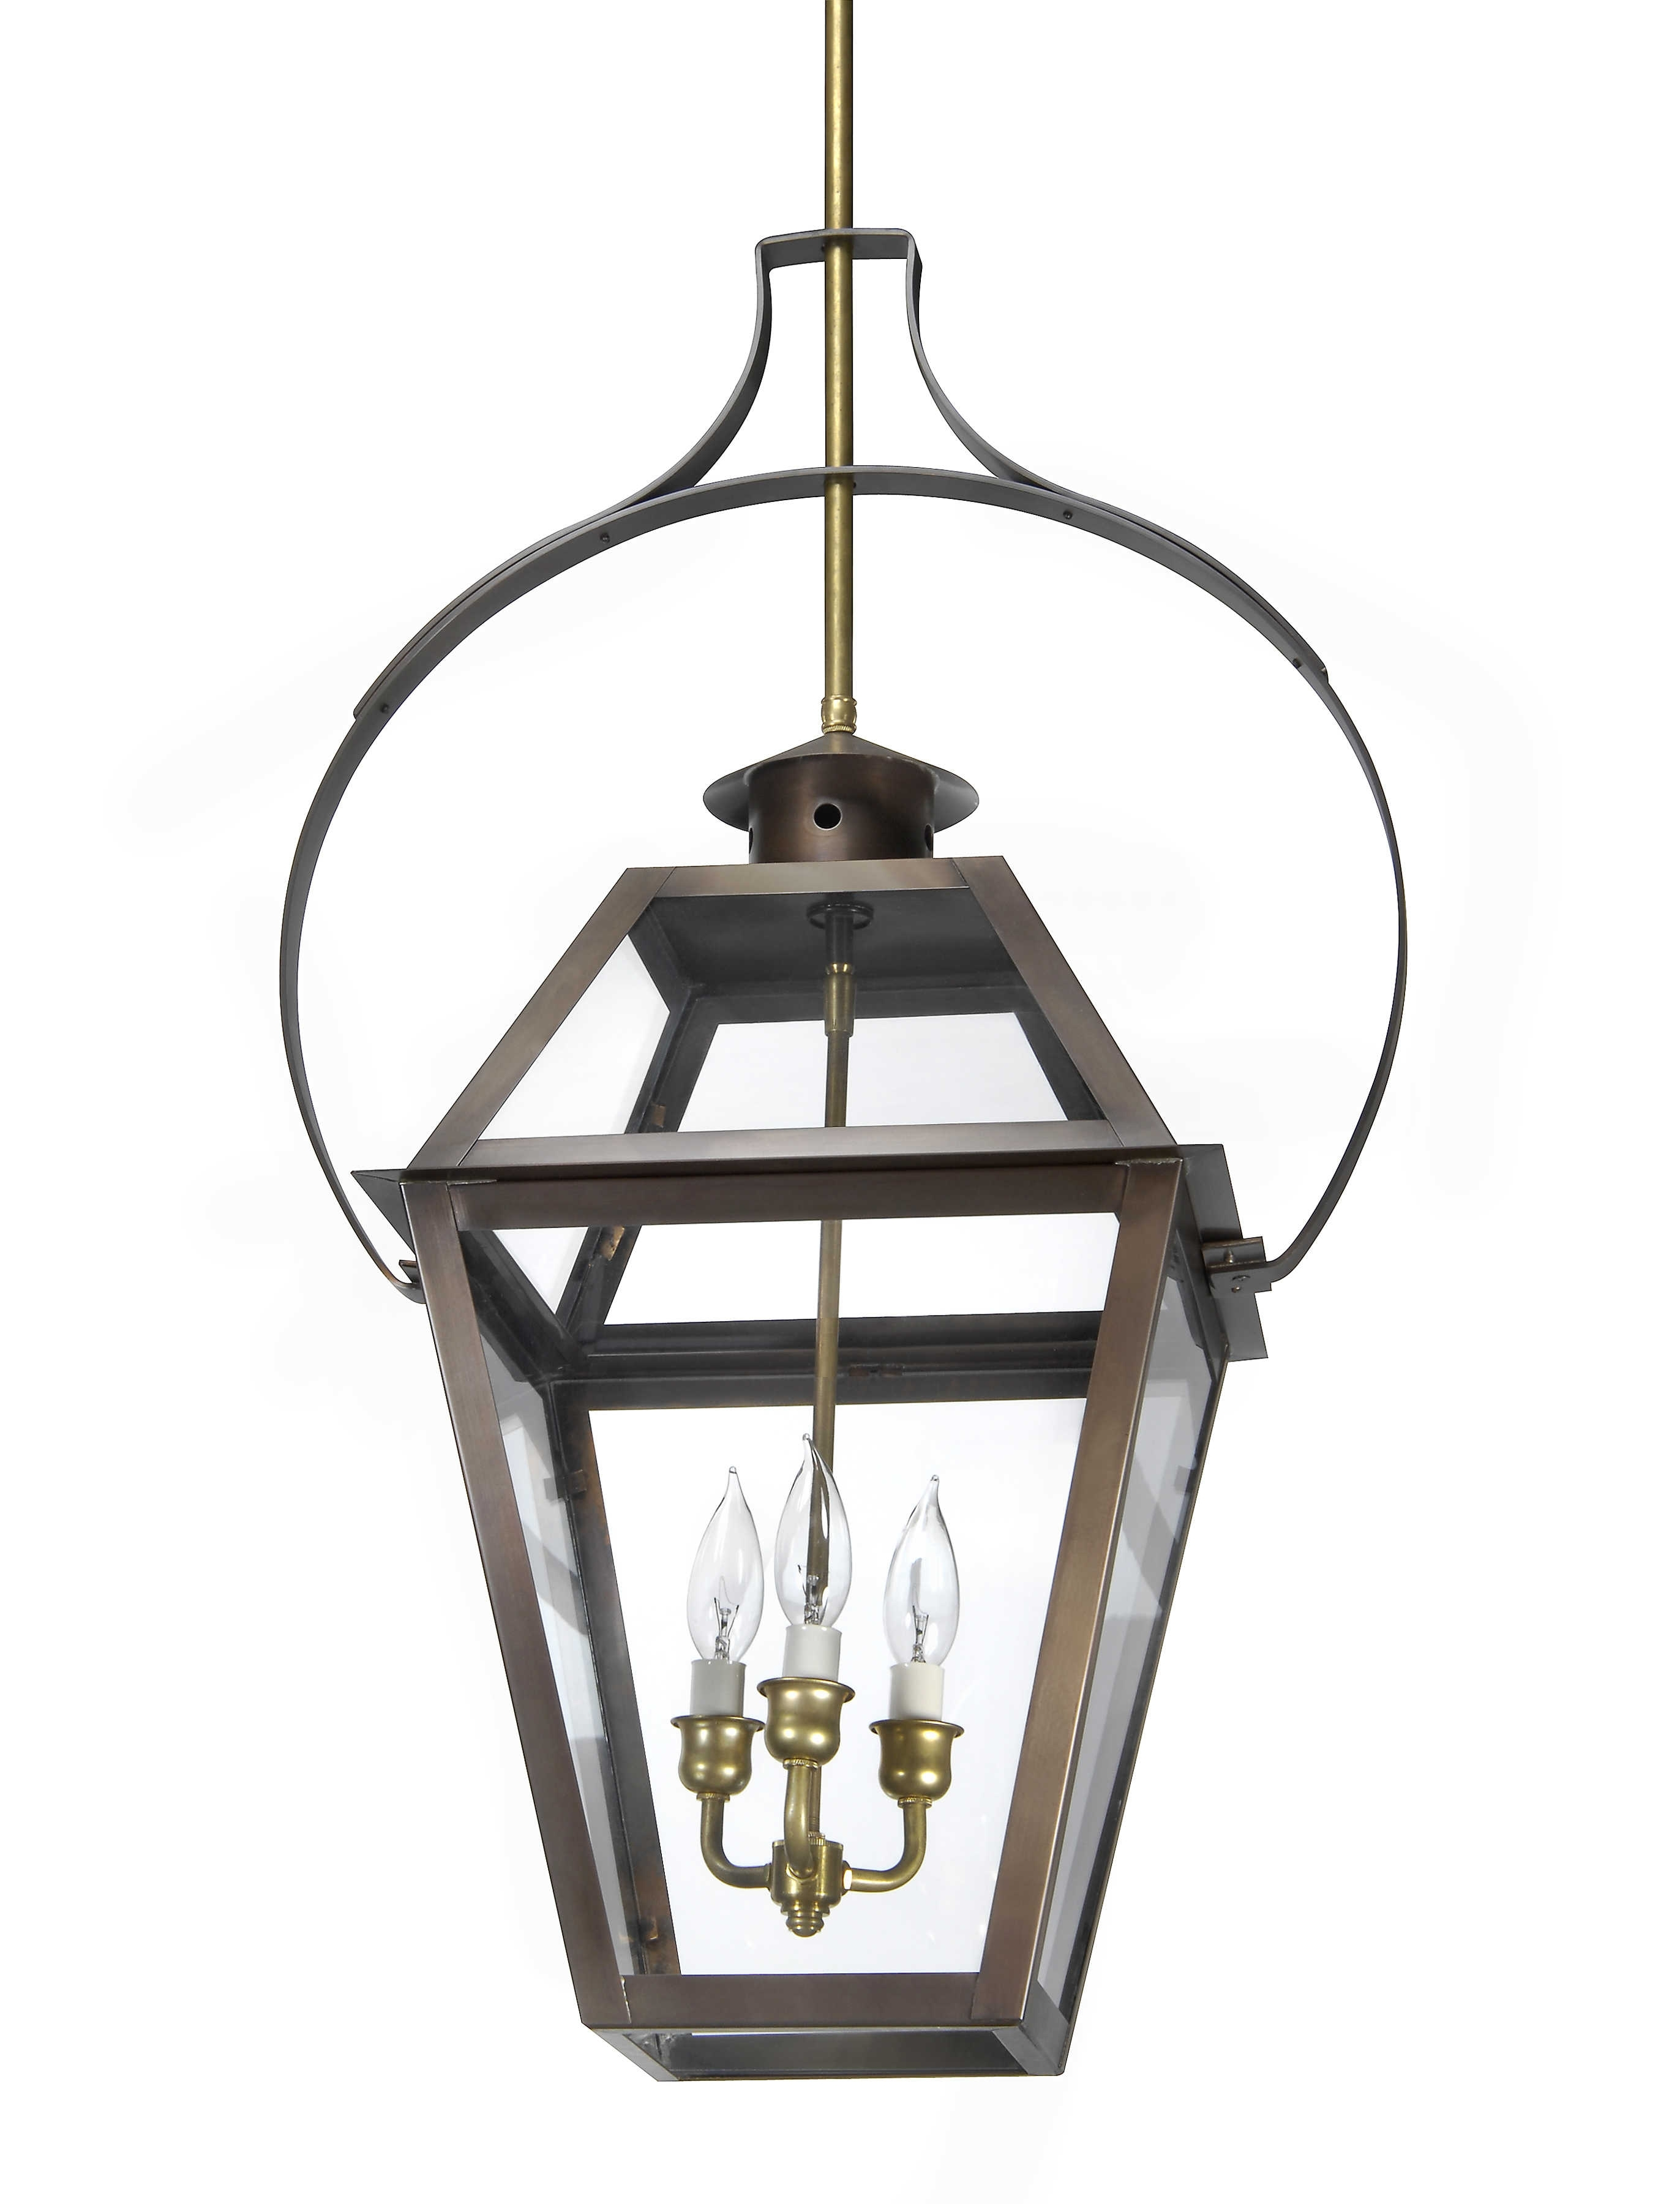 19Th Century High Fashion Lanterns With Outdoor Electric Lanterns (View 10 of 20)